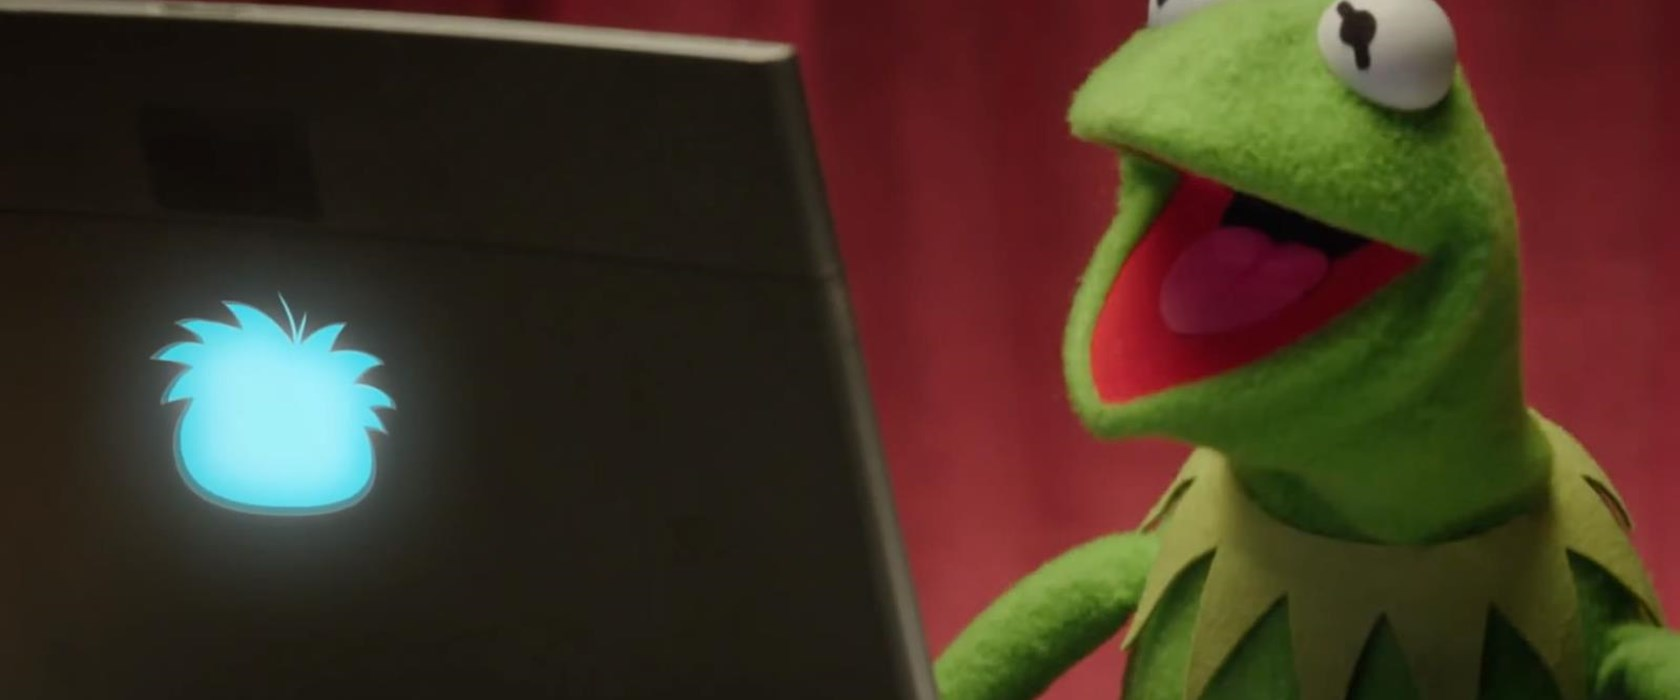 kermit planning content for a website.jpg